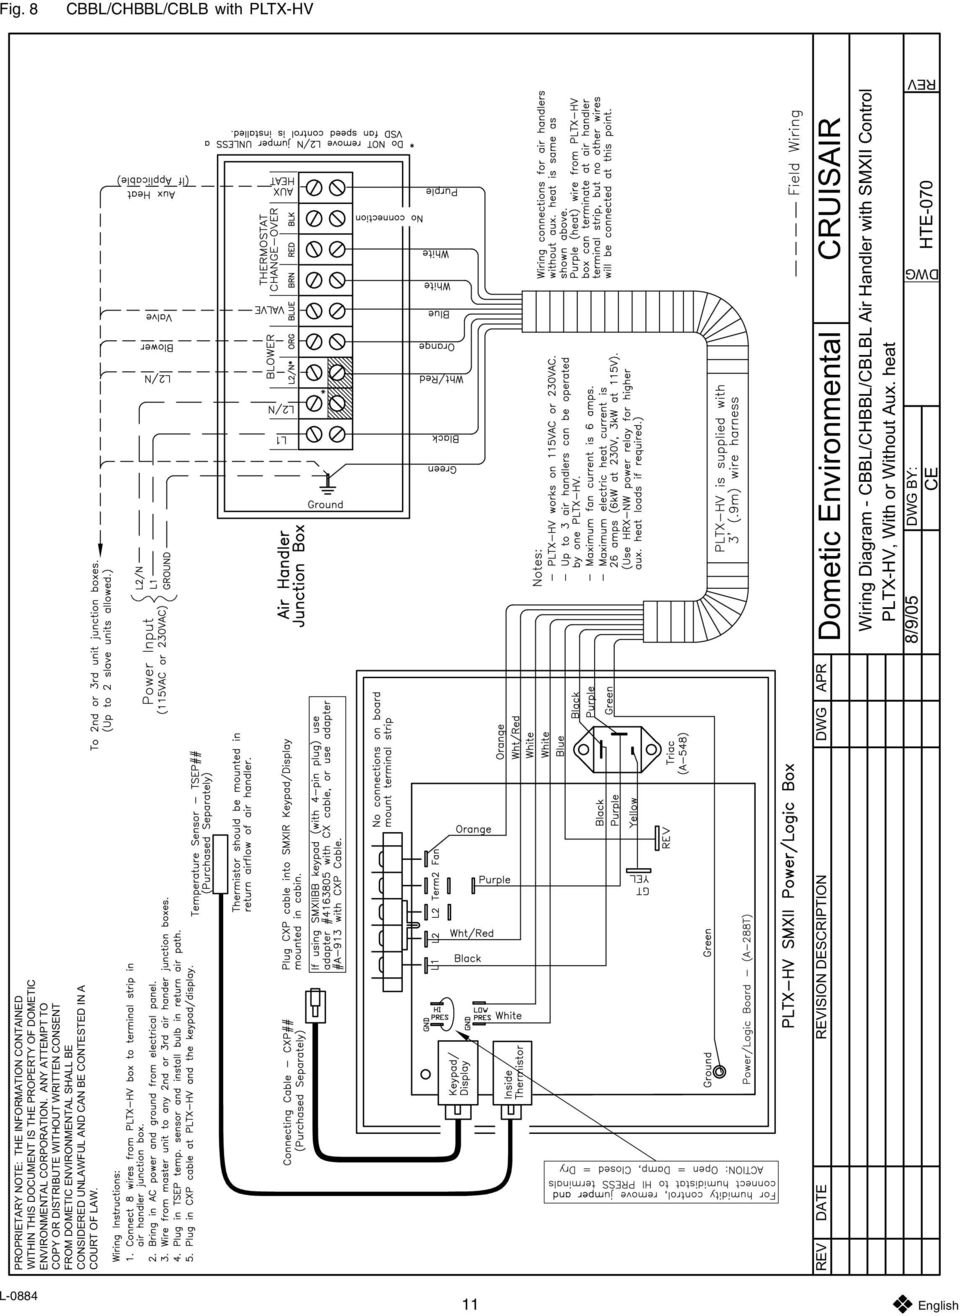 suburban rv furnace wiring diagram solidfonts wiring diagram for suburban rv furnace image gallery